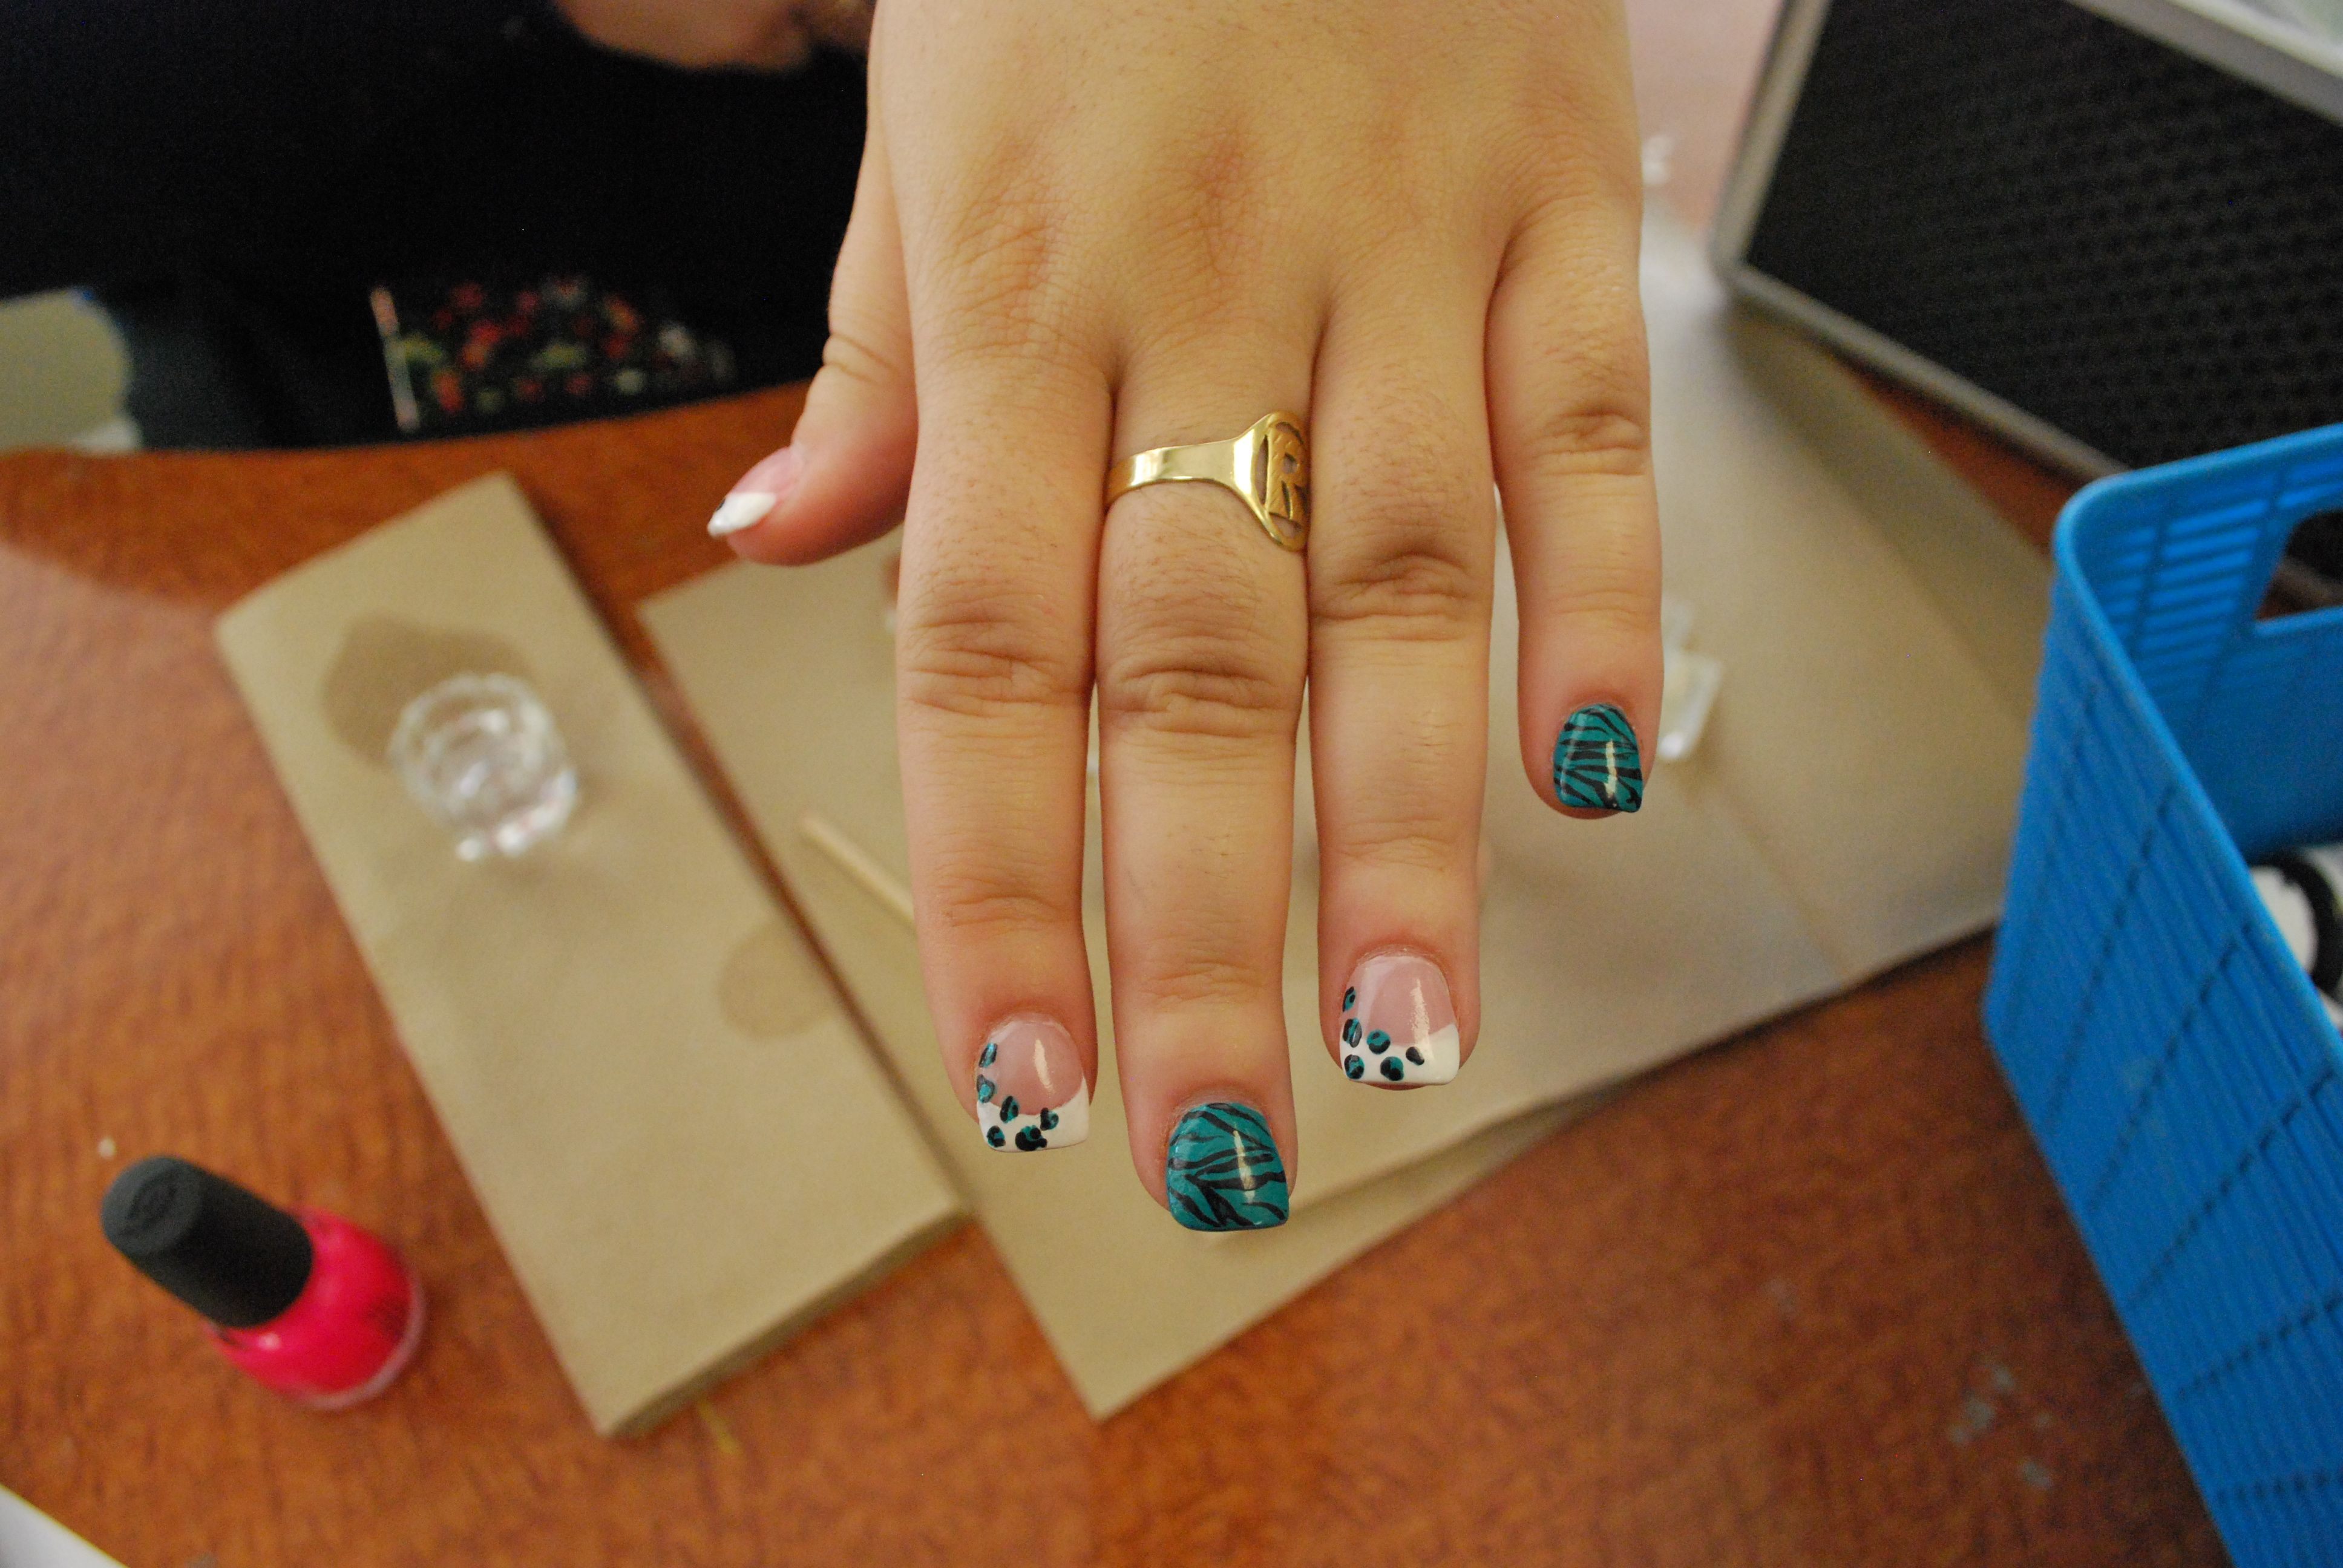 Nail Technology Nail technician courses, Mobile nails